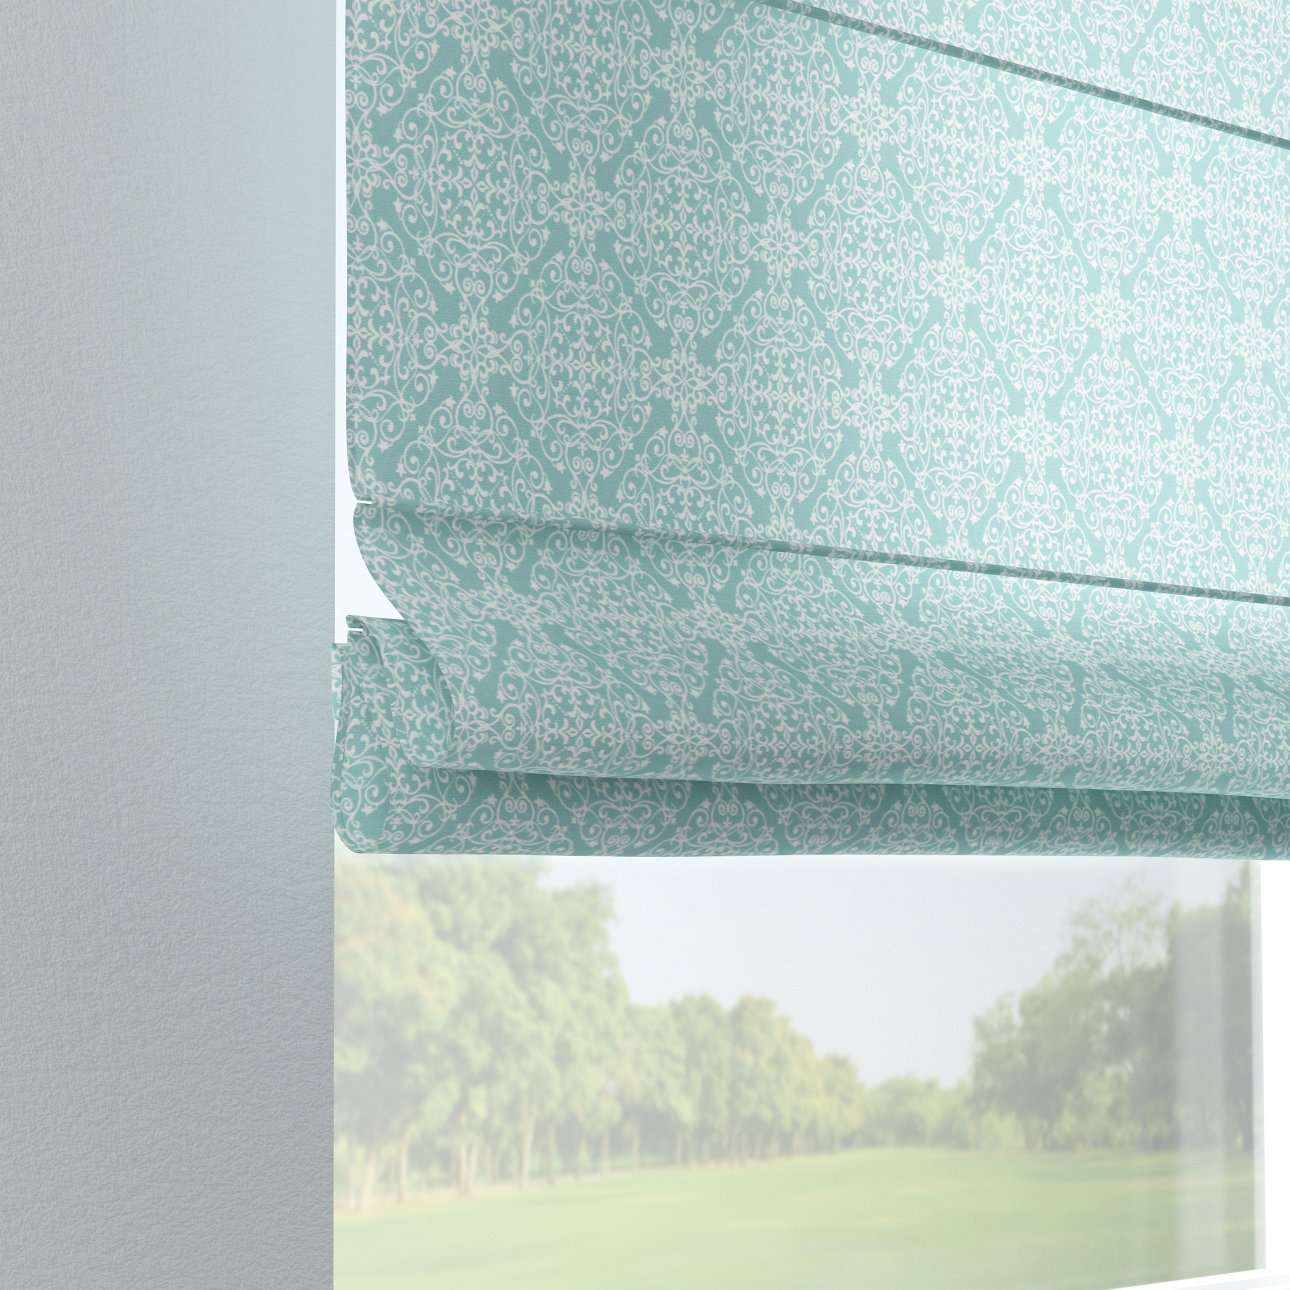 Verona tab top roman blind 80 x 170 cm (31.5 x 67 inch) in collection Flowers, fabric: 140-37